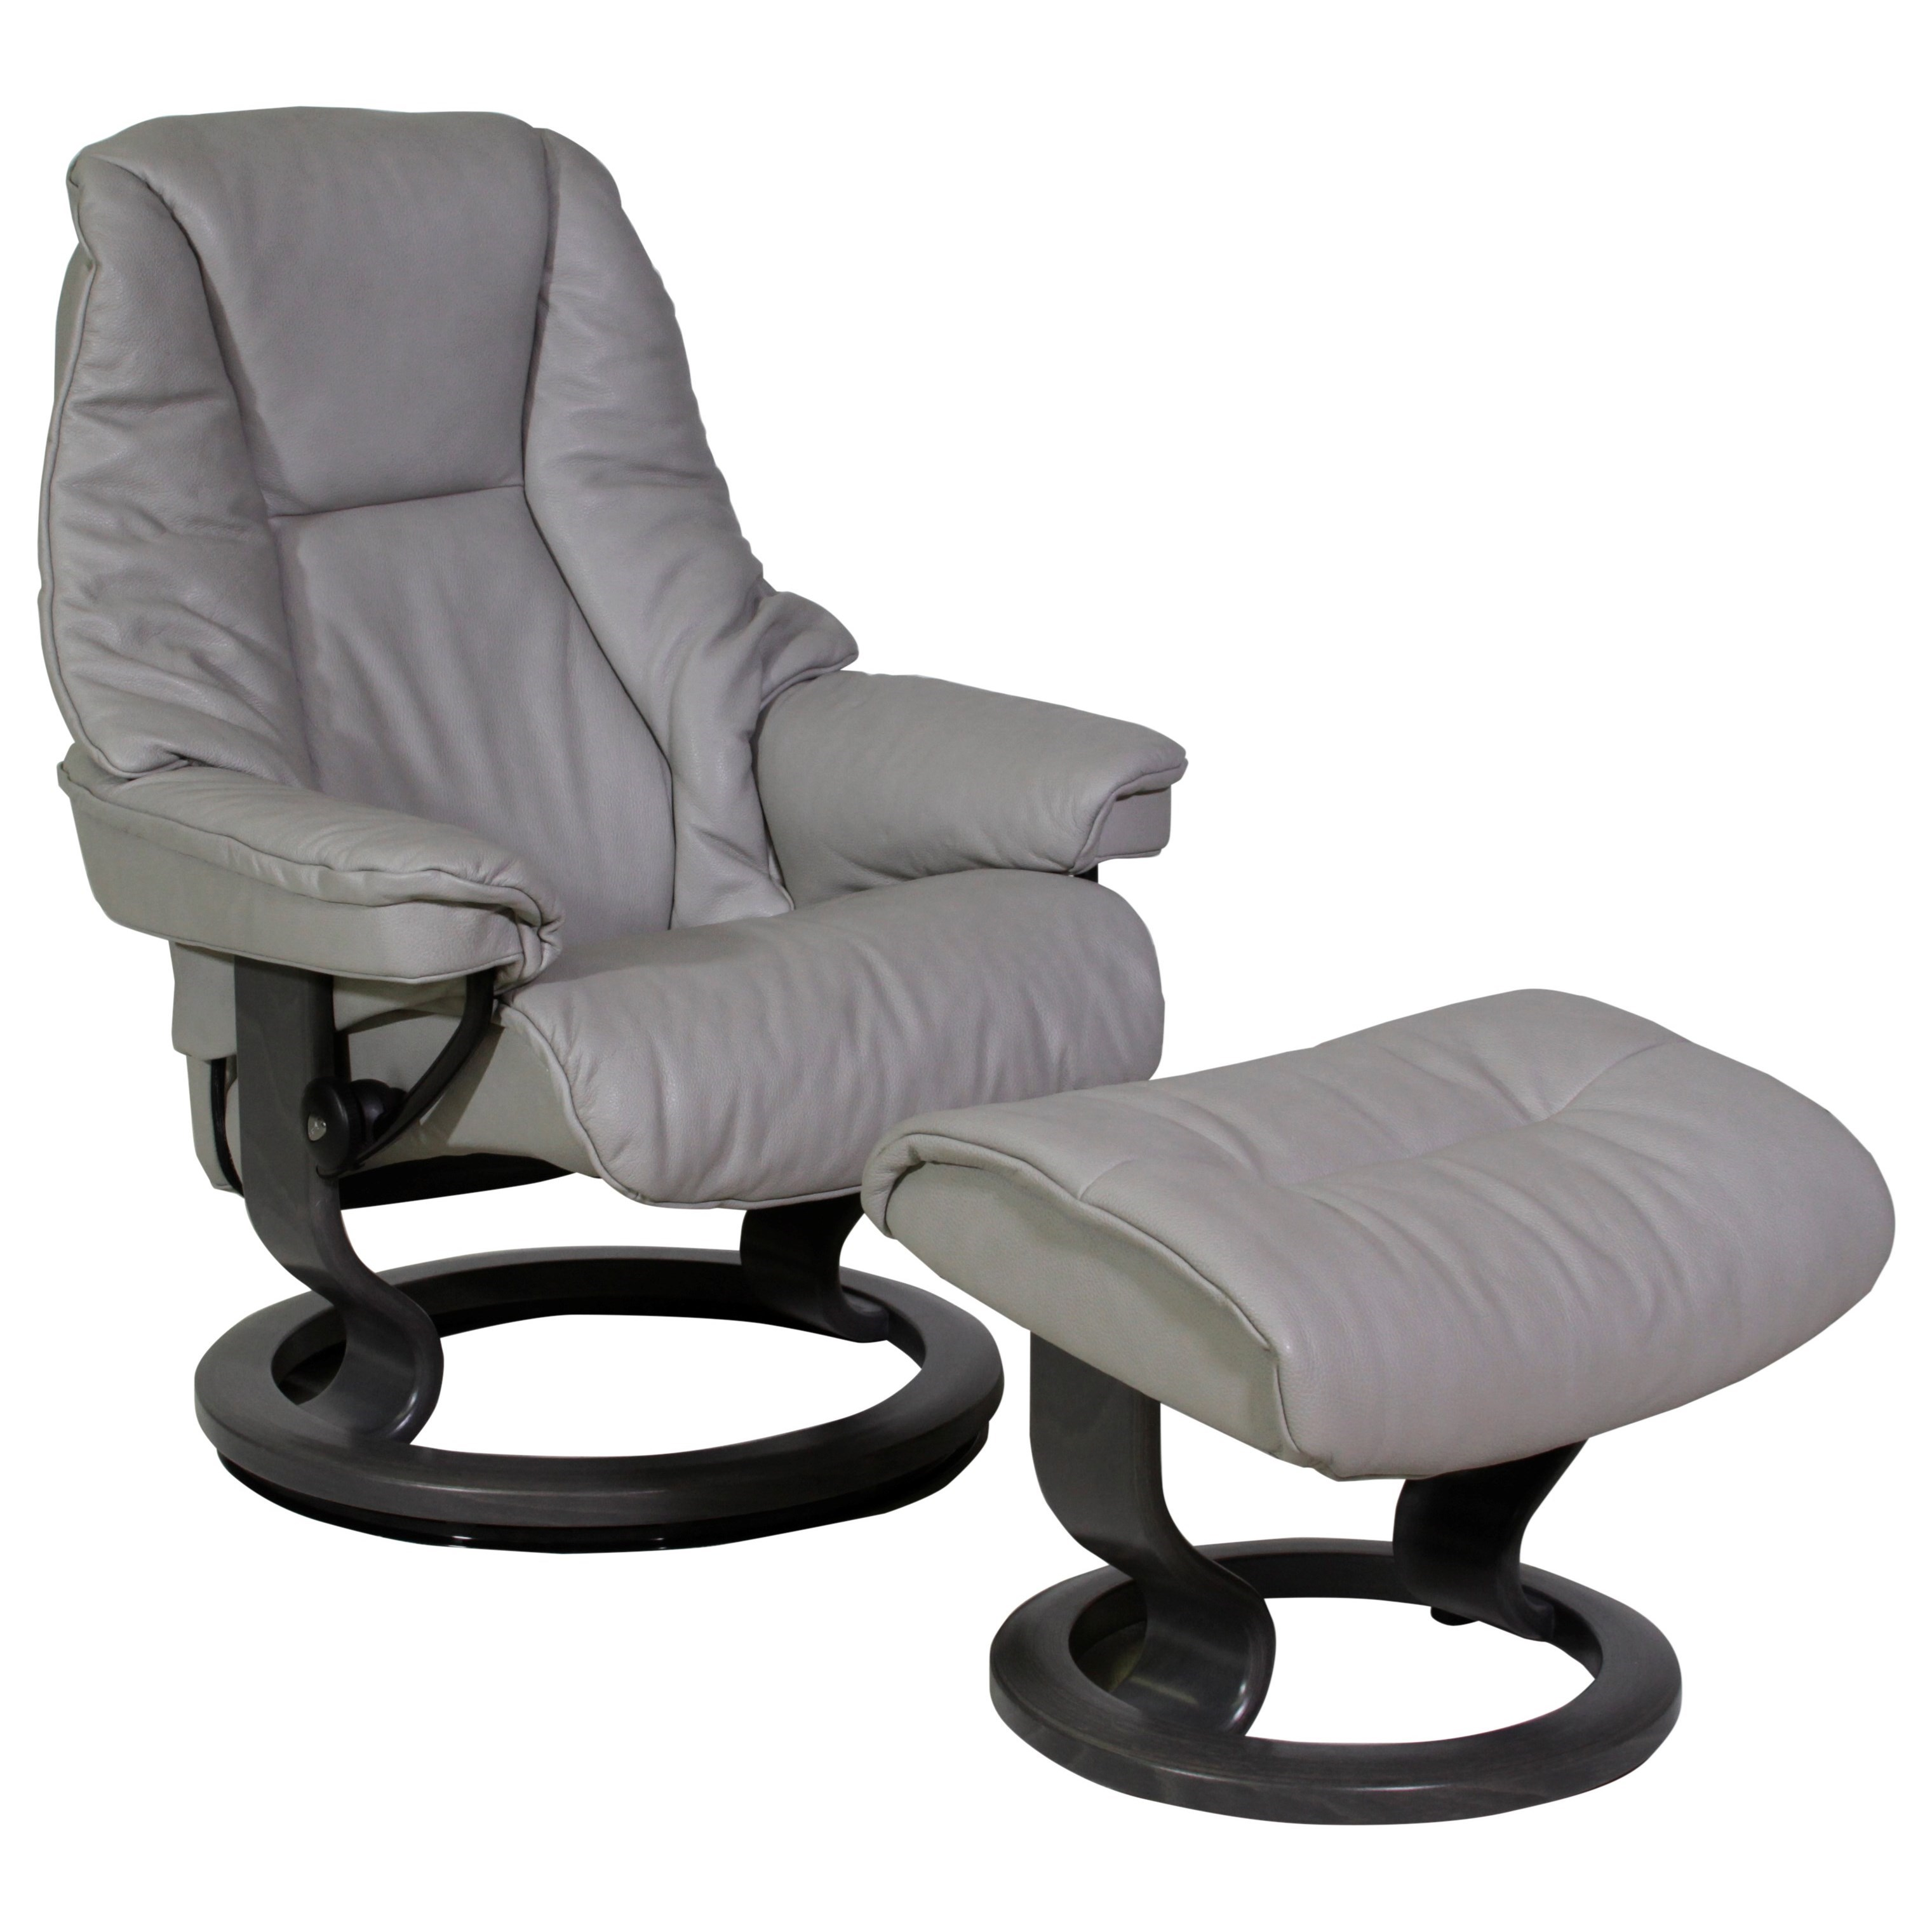 Stressless By Ekornes Live Small Stressless Chair U0026 Ottoman   Item Number:  13180150912508